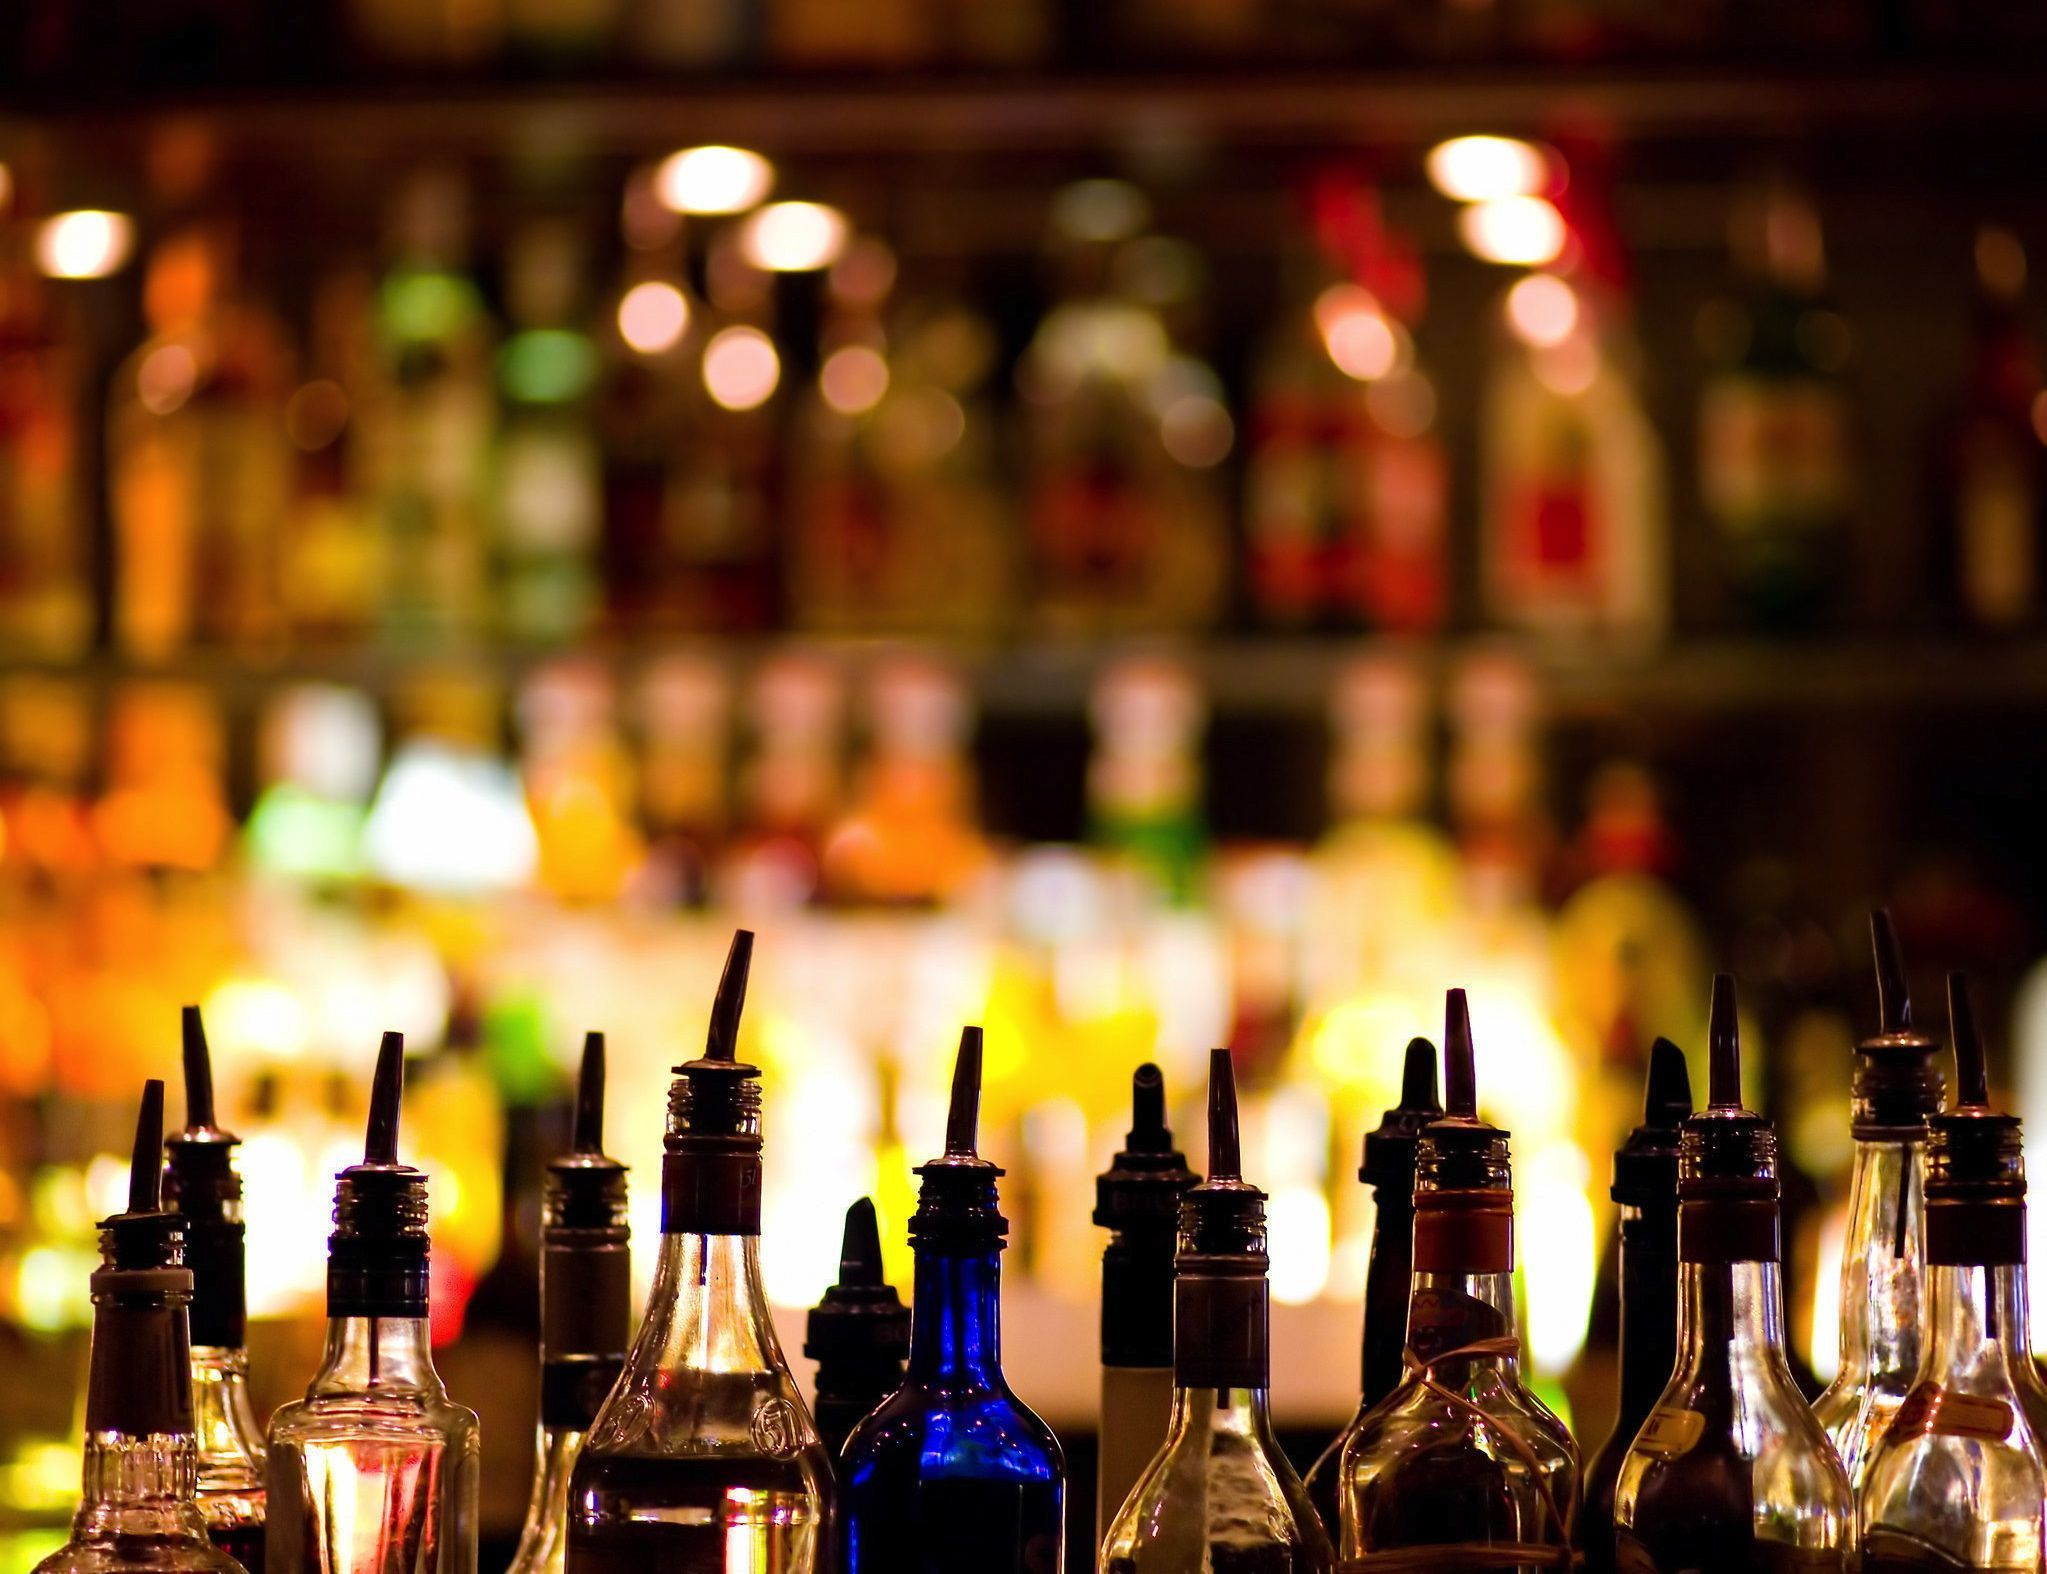 Amazing Liquor Pictures & Backgrounds